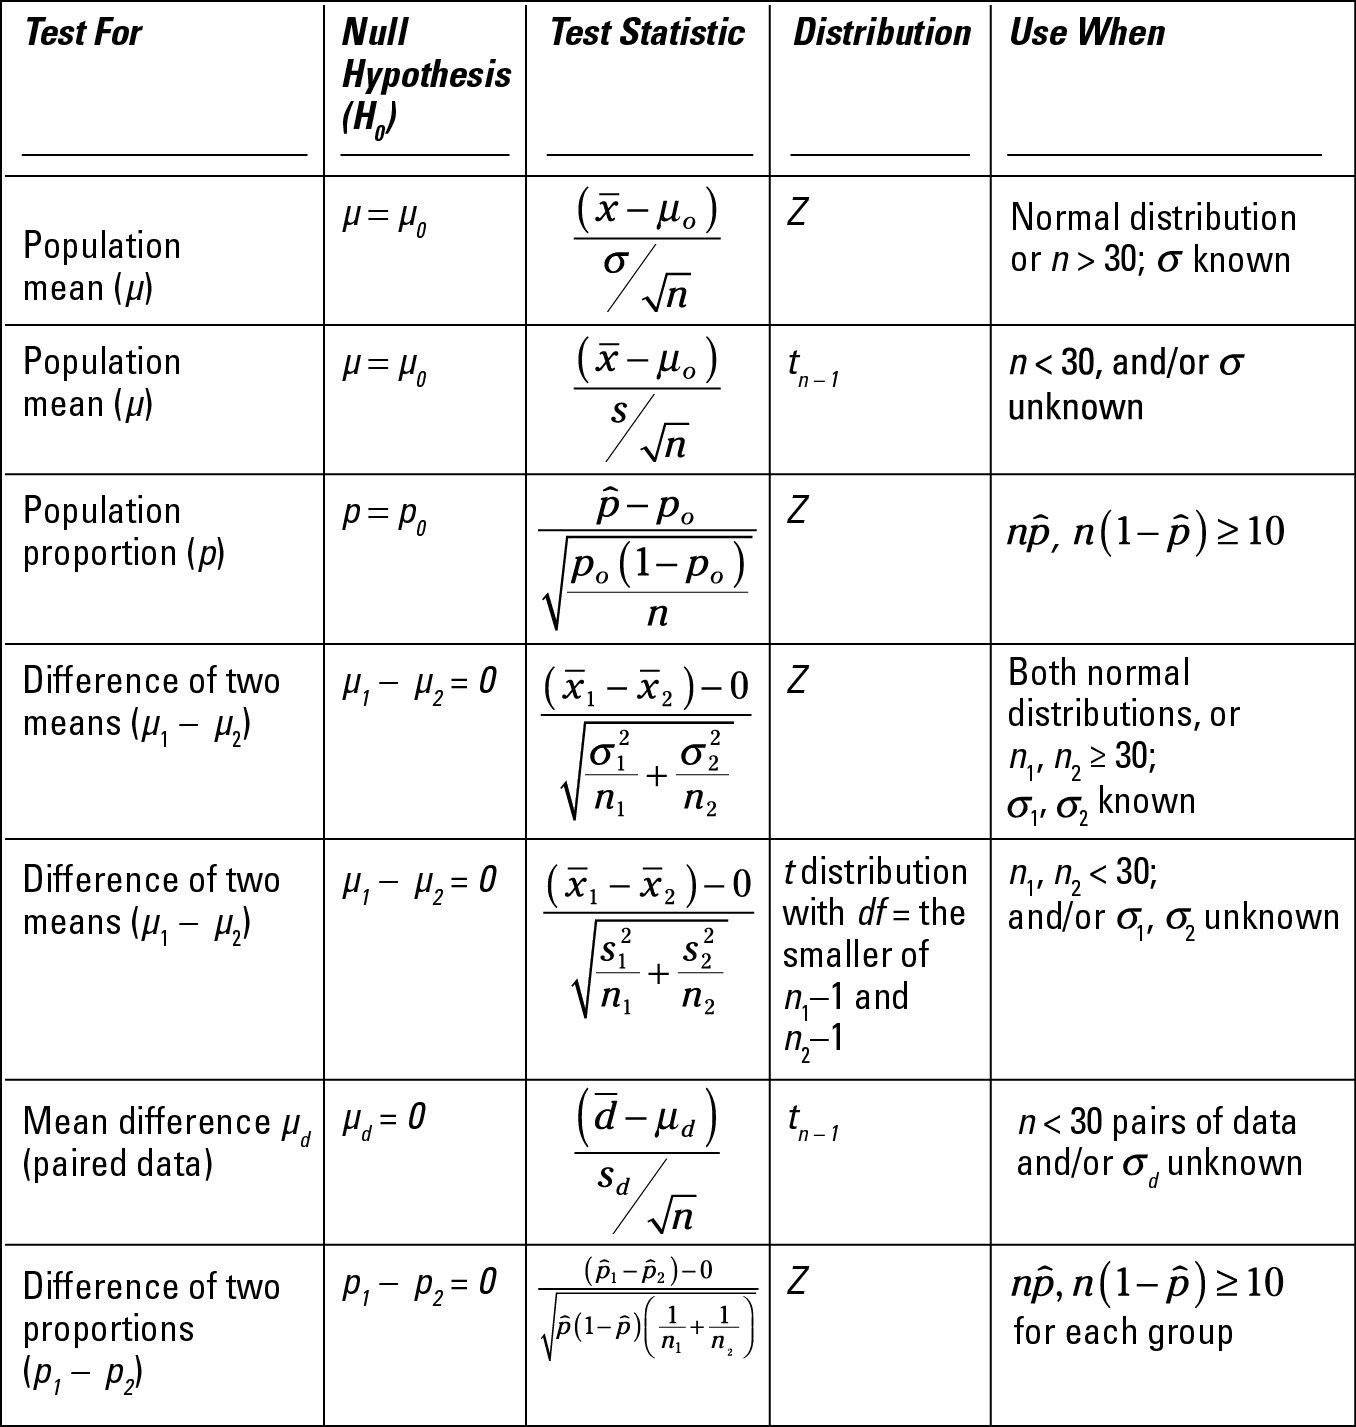 worksheet Box And Whisker Plot Worksheet Pdf box and whisker plot worksheet with answers abitlikethis statistics formula sheet on standard deviation answers